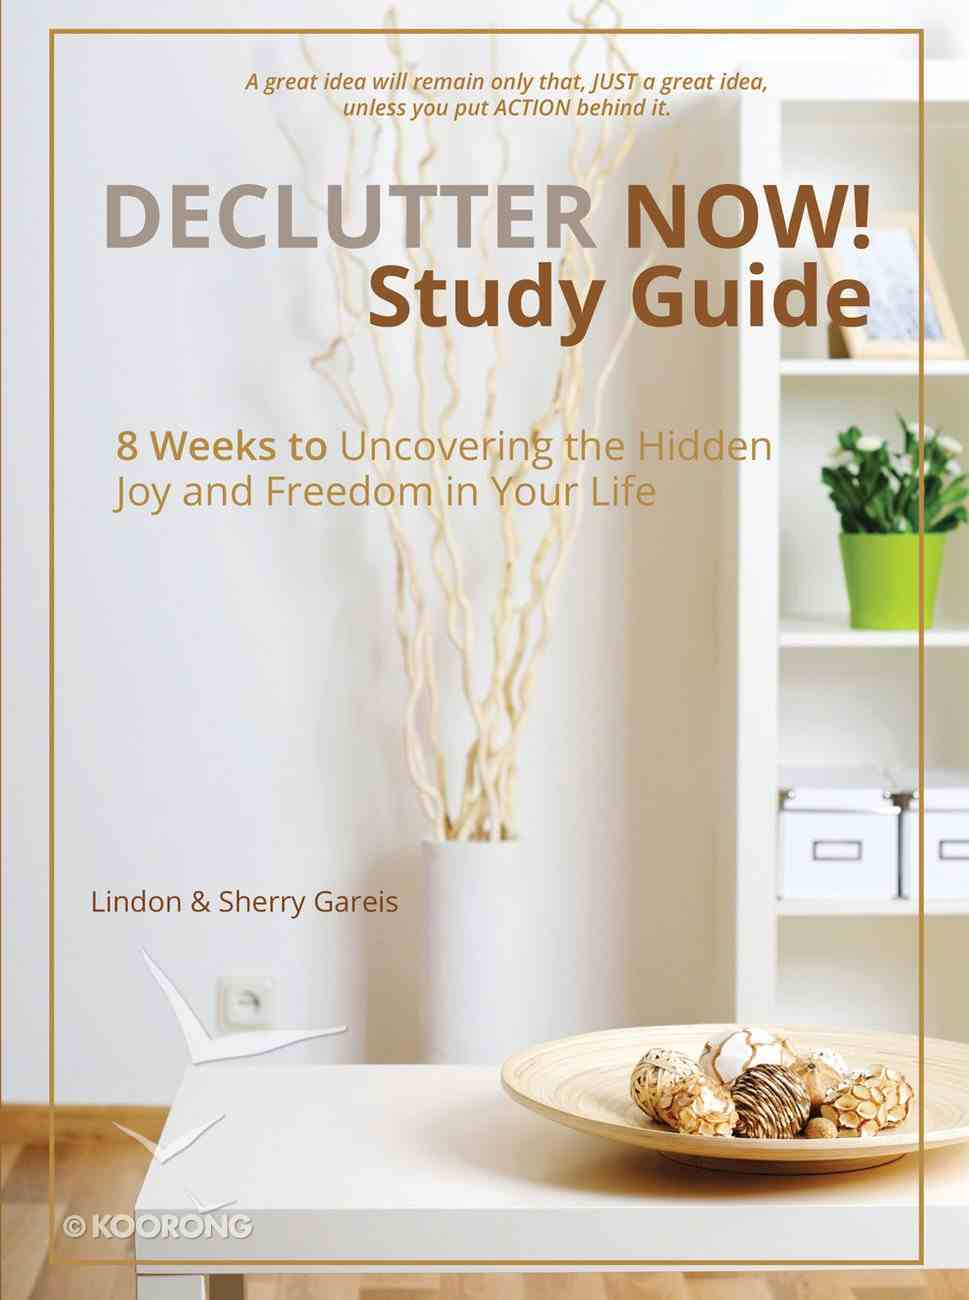 Declutter Now! Study Guide: 8 Weeks to Uncovering the Hidden Joy and Freedom in Your Life eBook